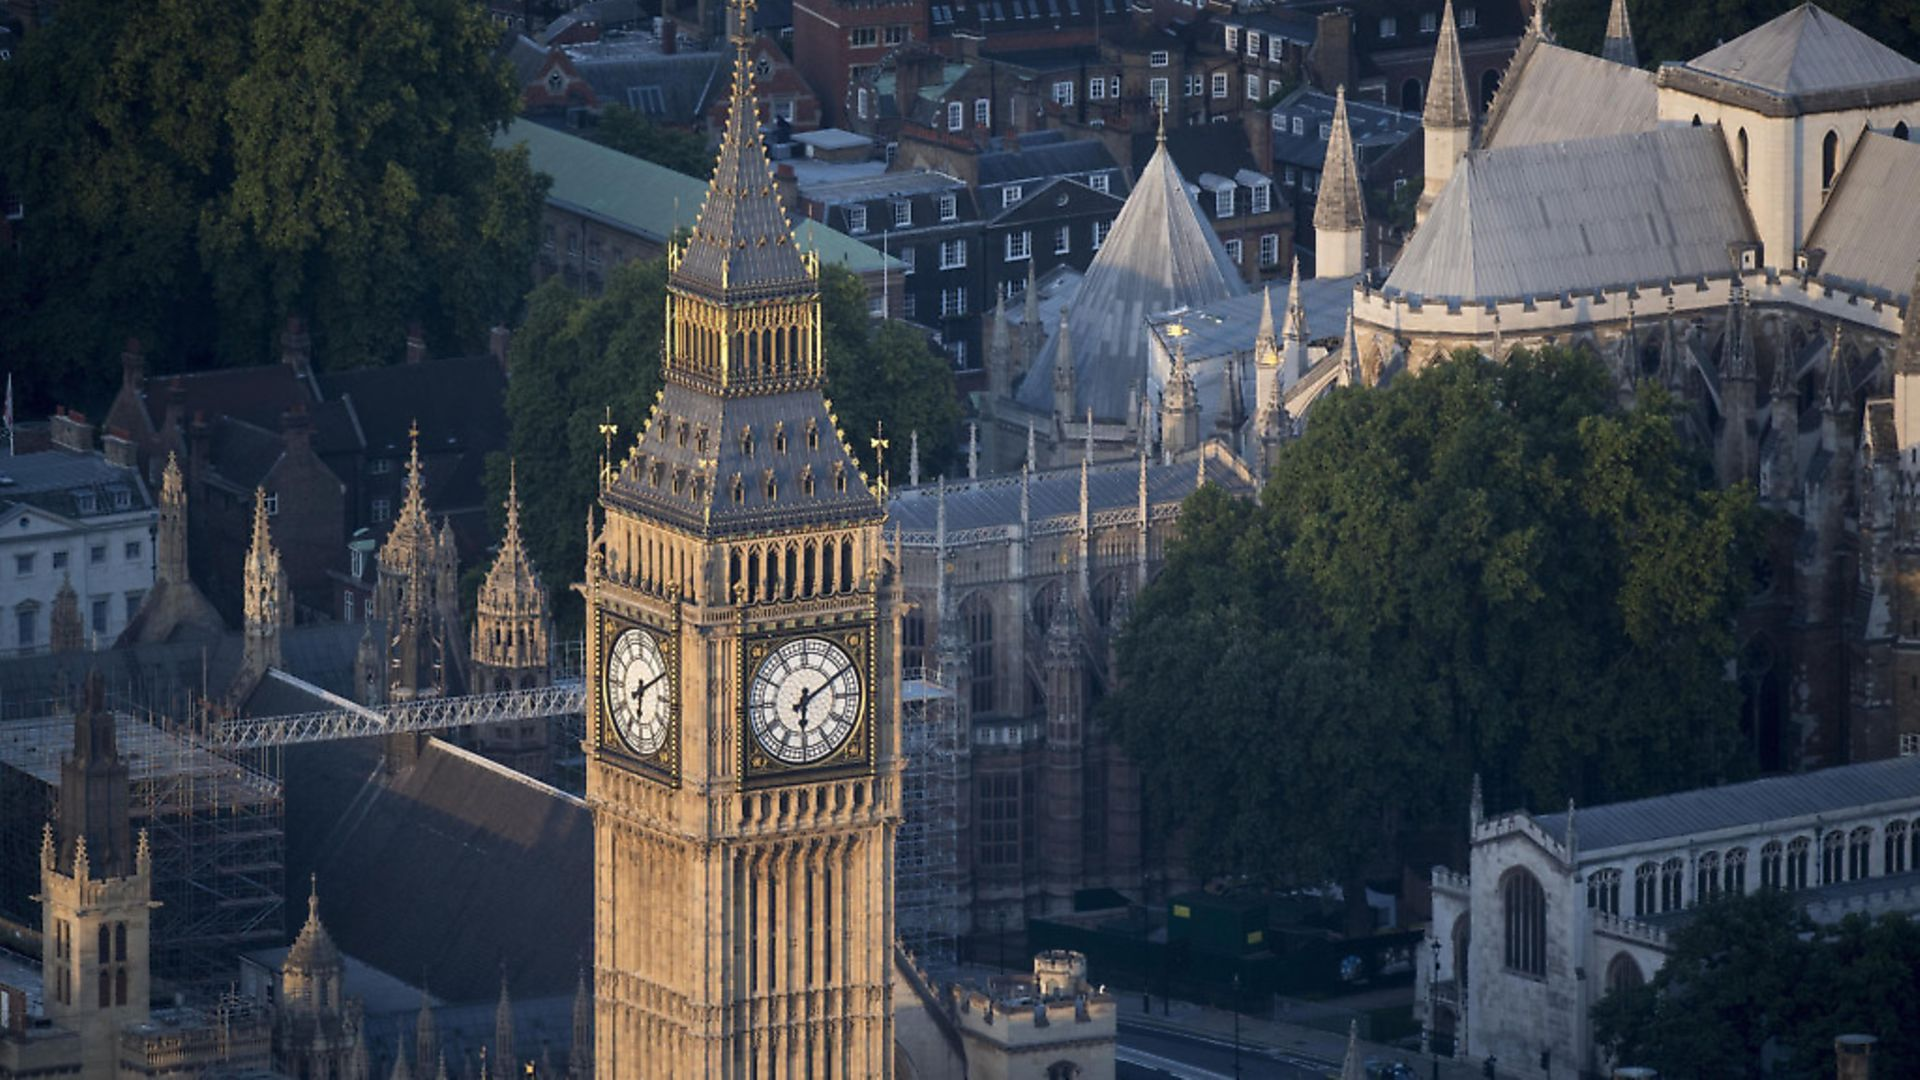 Elizabeth Tower, which houses Big Ben, at the House of Commons in Westminster. Photograph: Victoria Jones/PA. - Credit: PA Archive/PA Images